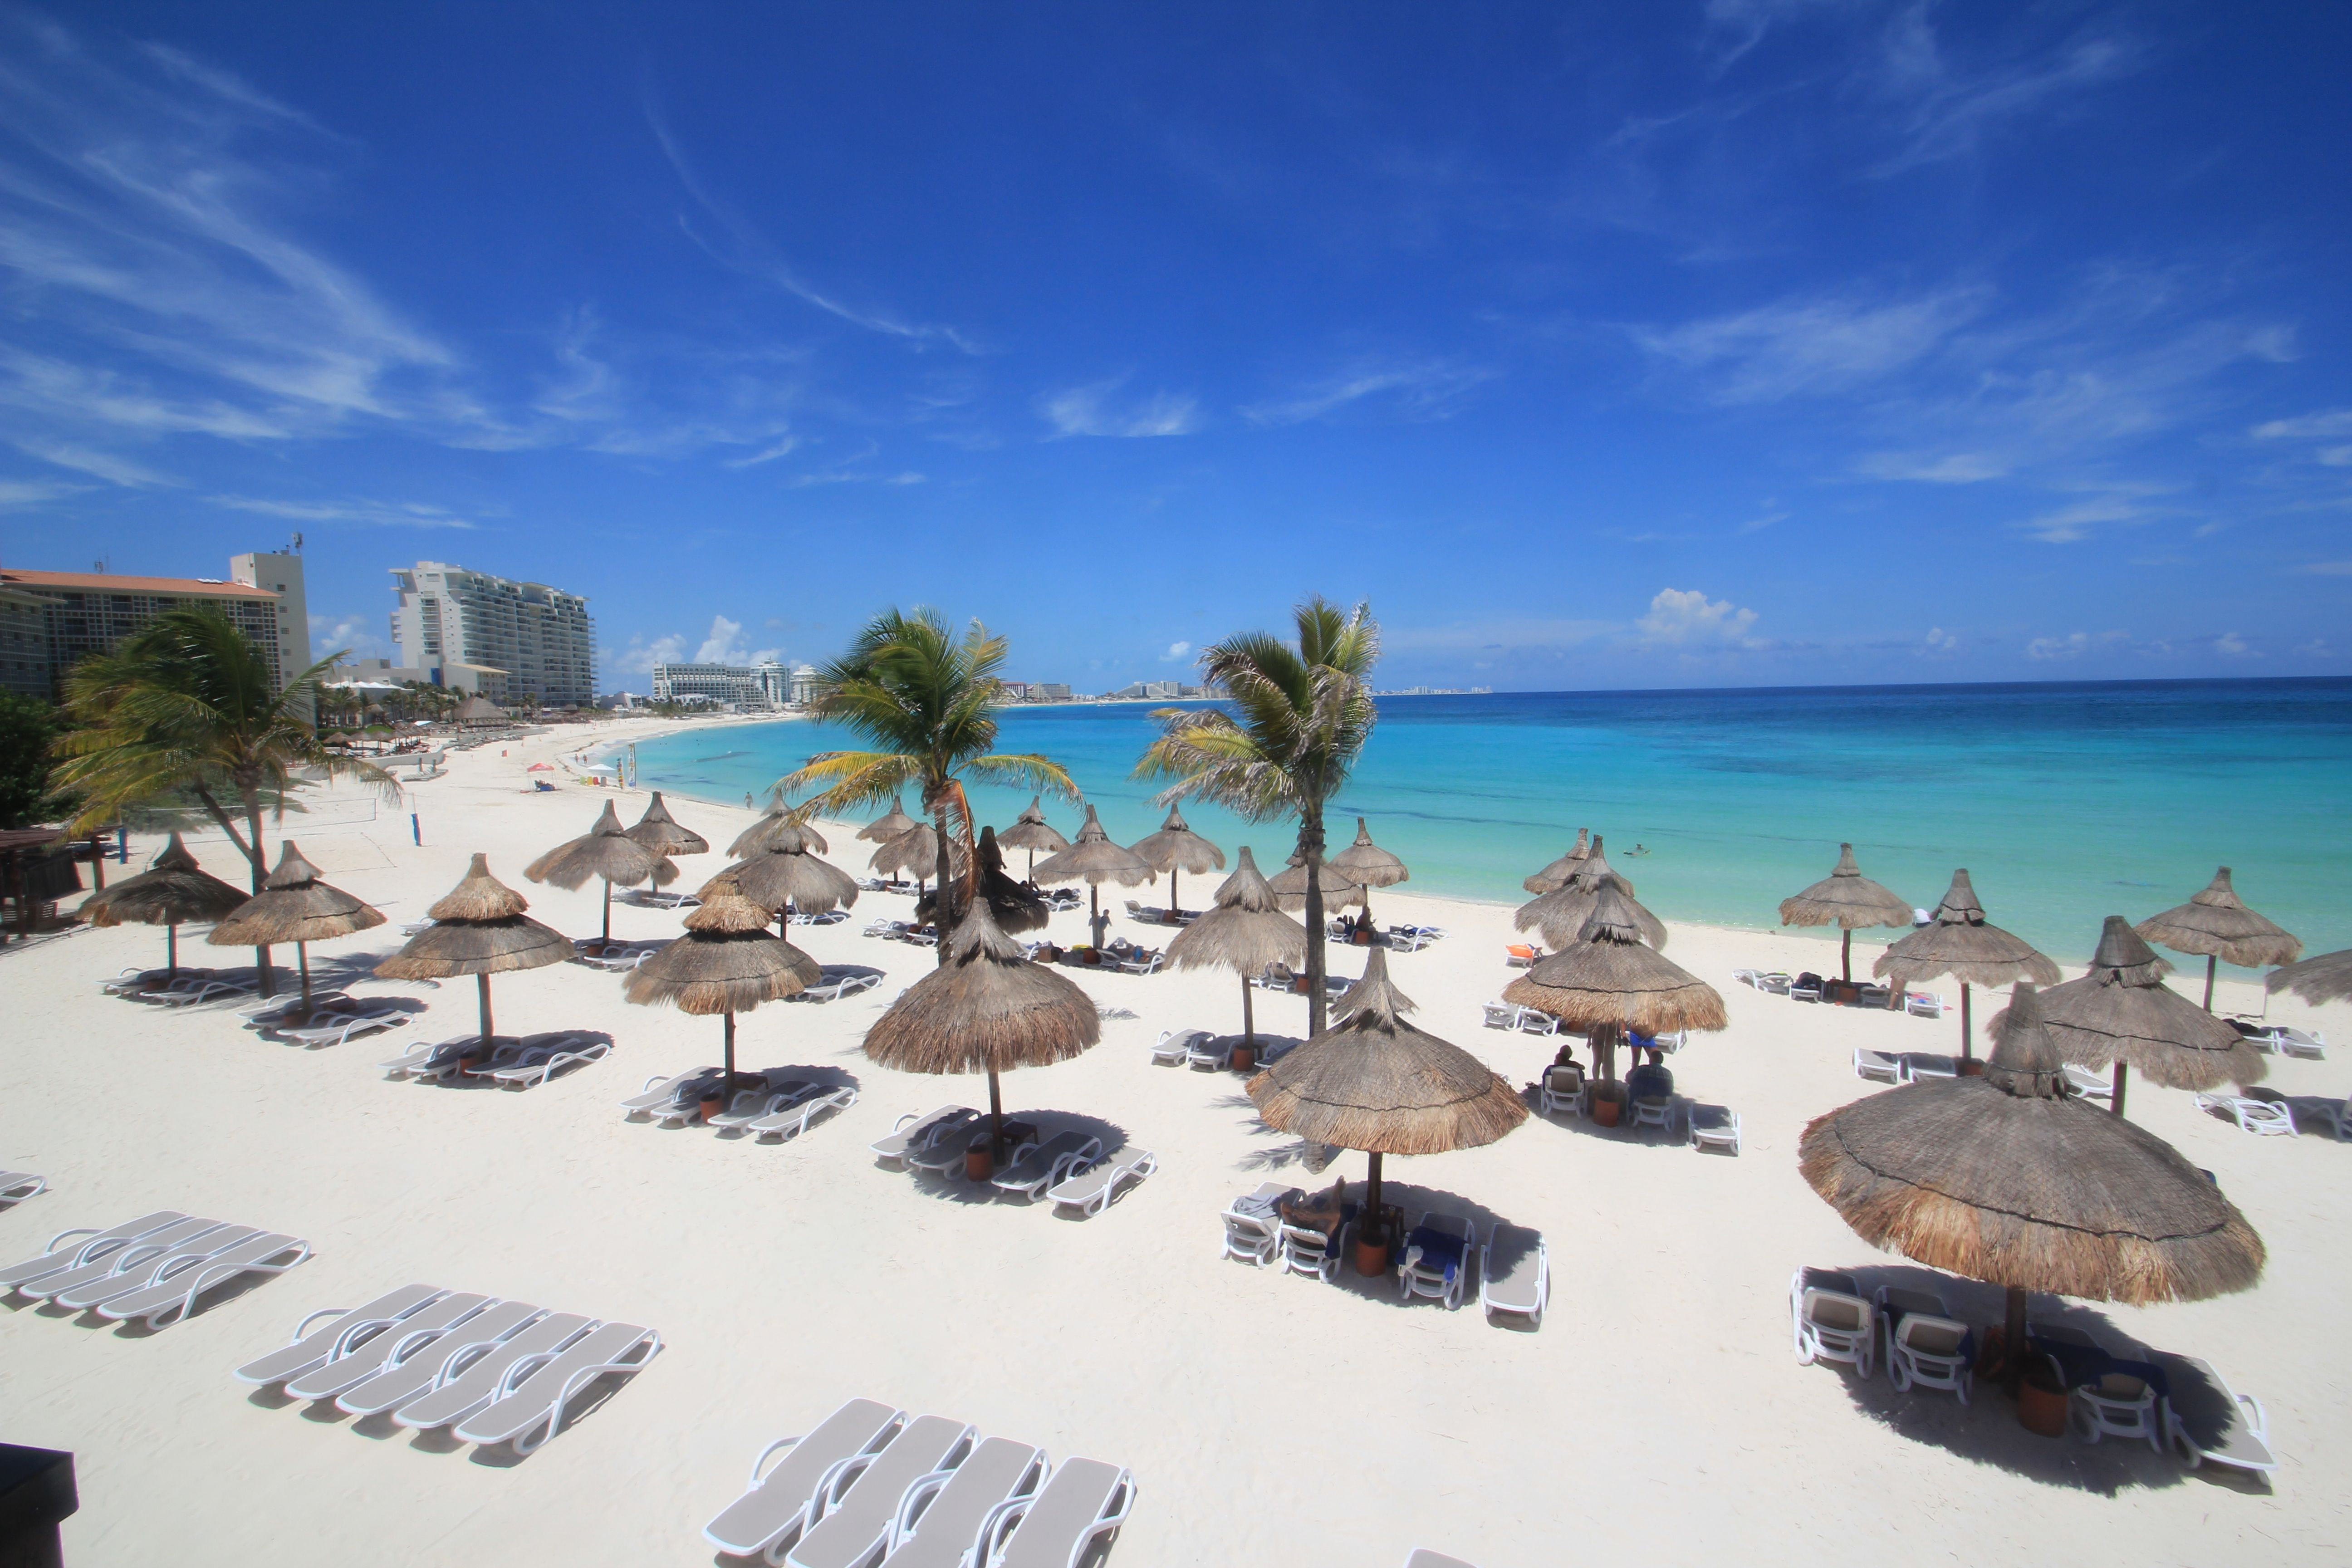 Cancun Trip Beautiful Club Med Cancun Mexico Beach Travel Pinterest